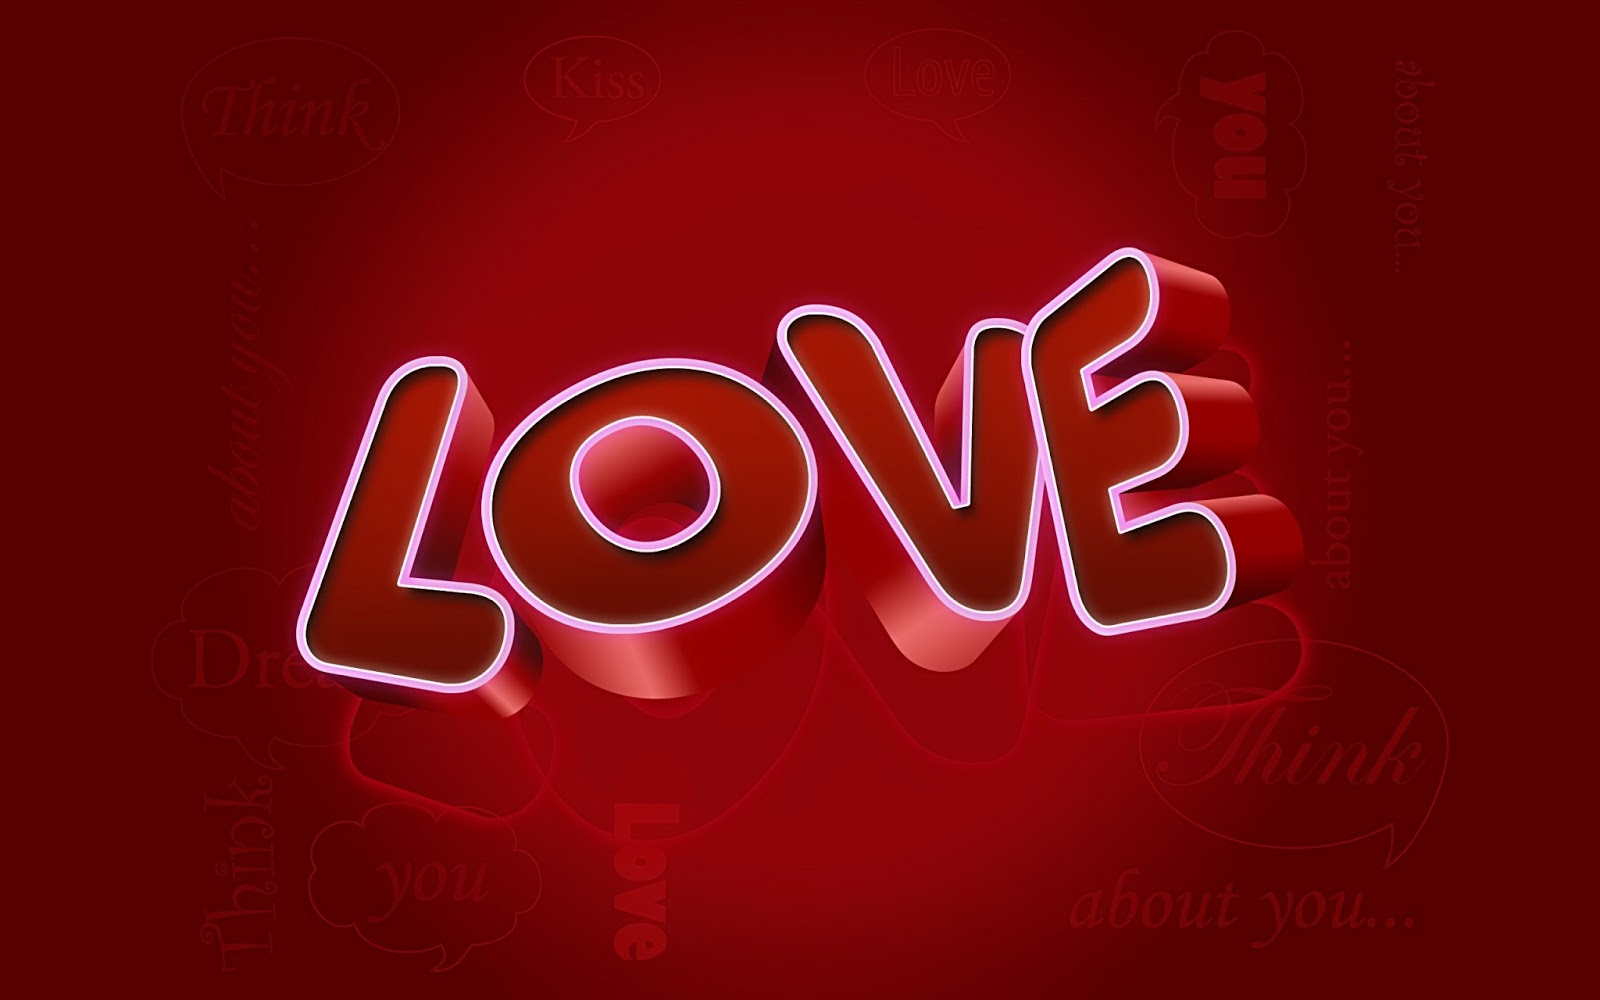 love red wallpaper love wallpaper quotes wallpaper red love wallpaper 1600x1000